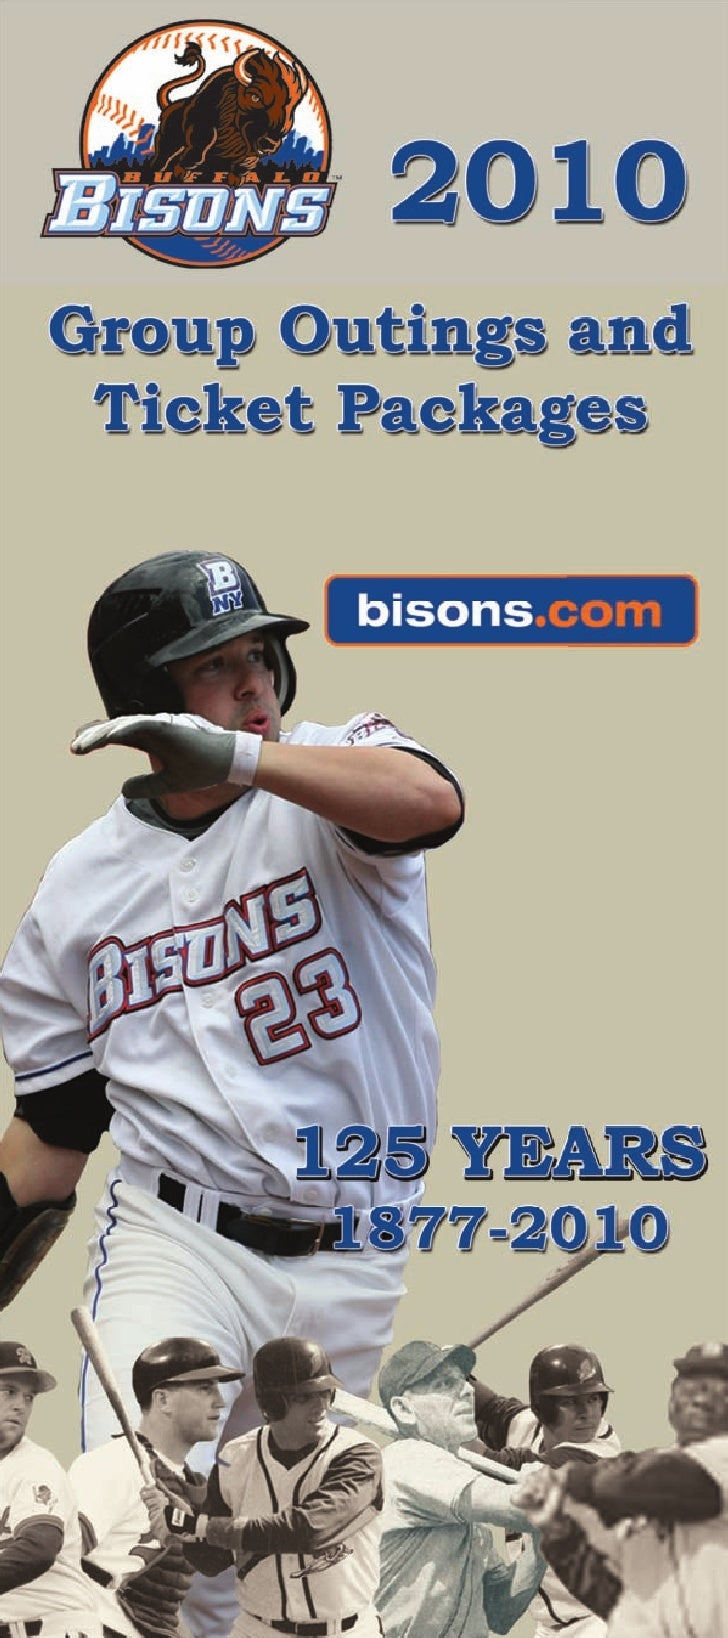 Spend the spring and summer months with the Bisons! Season tickets provide a discounted way to attend all 72 games. This p...